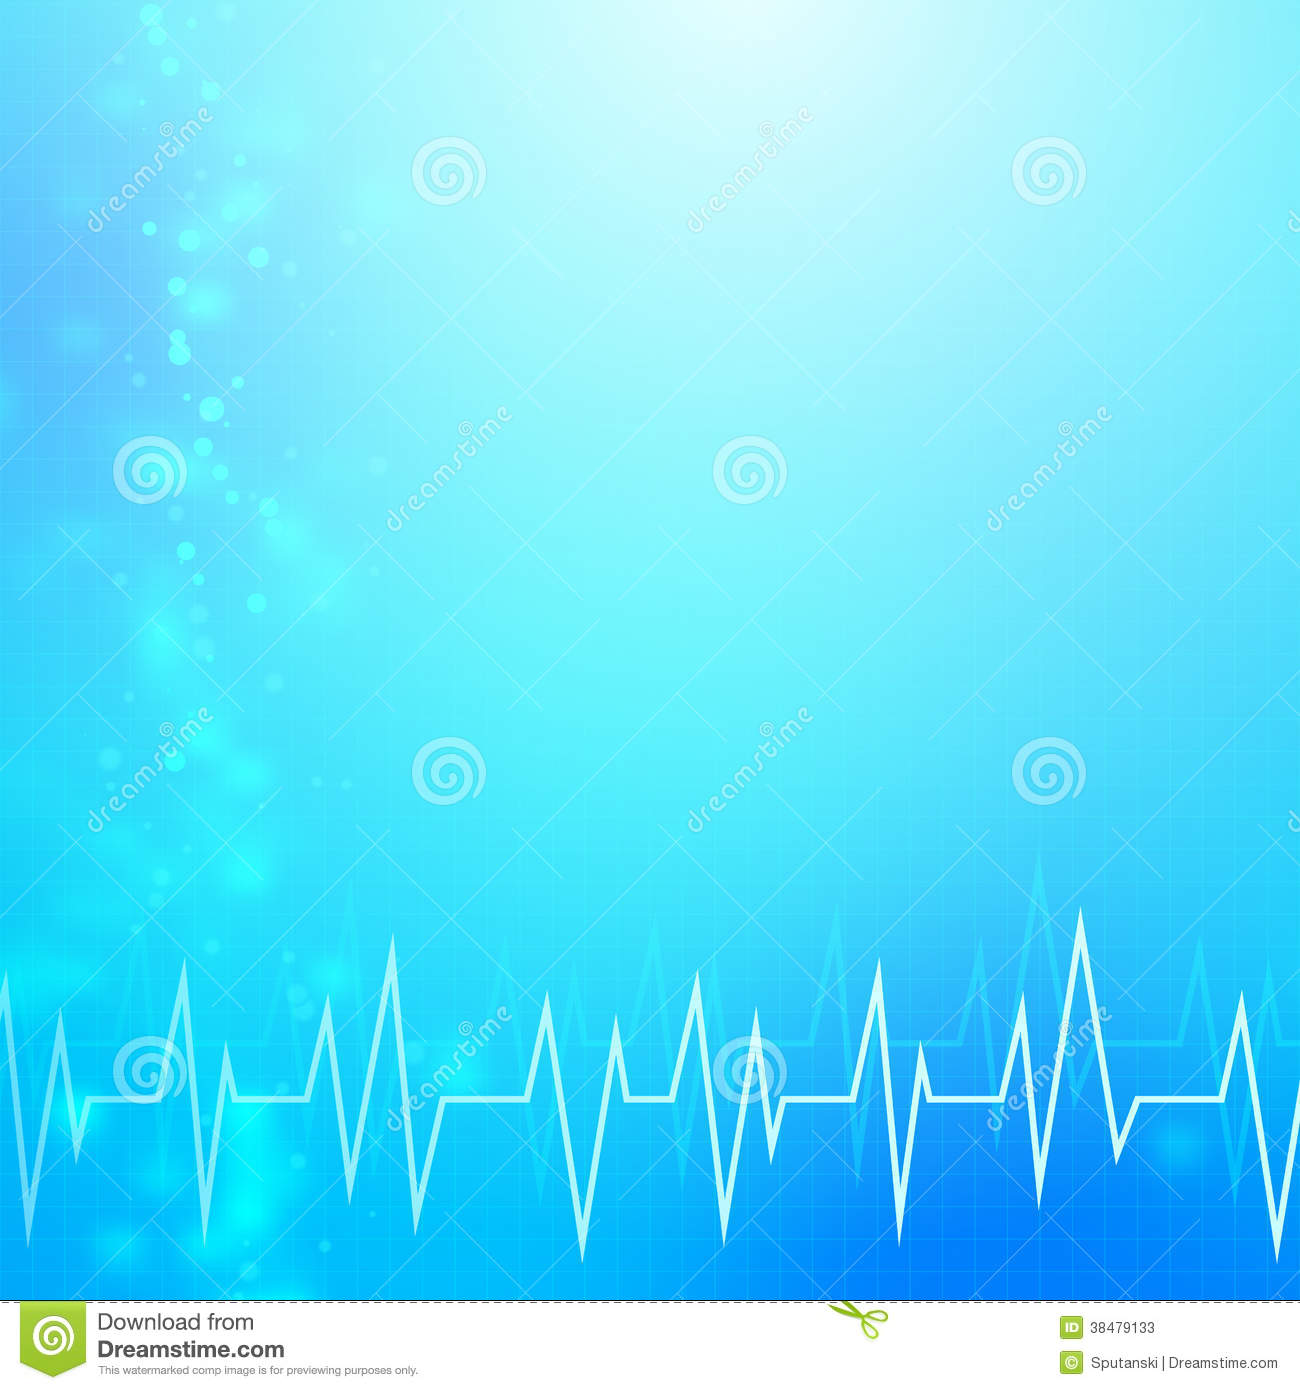 Doctor Symbol Hd Wallpaper Abstract Blue Medical Background Stock Photos Image